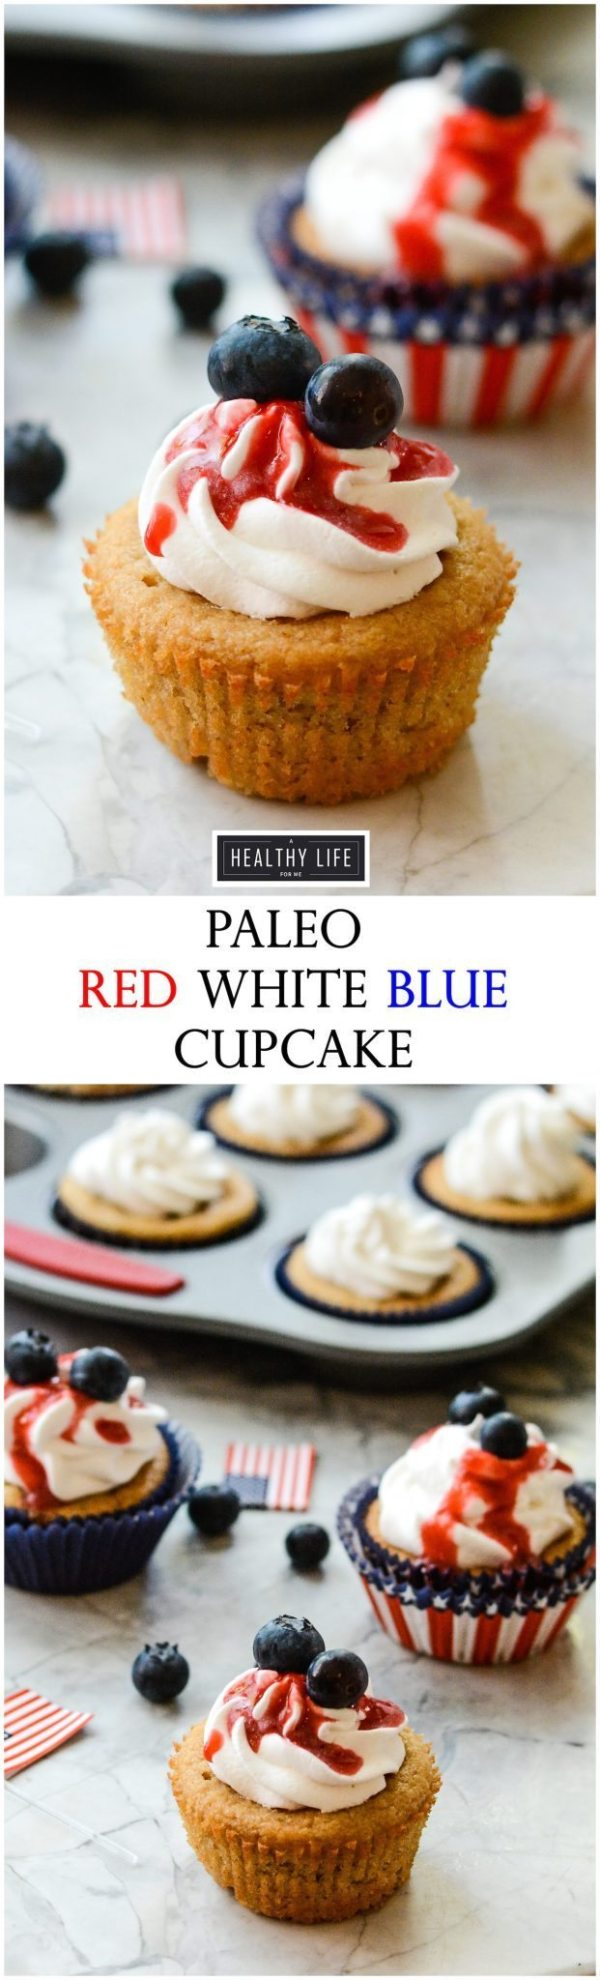 Paleo Red White Blue Cupcake are the prettiest little cupcakes to celebrate the summer holidays | ahealthylifeforme.com